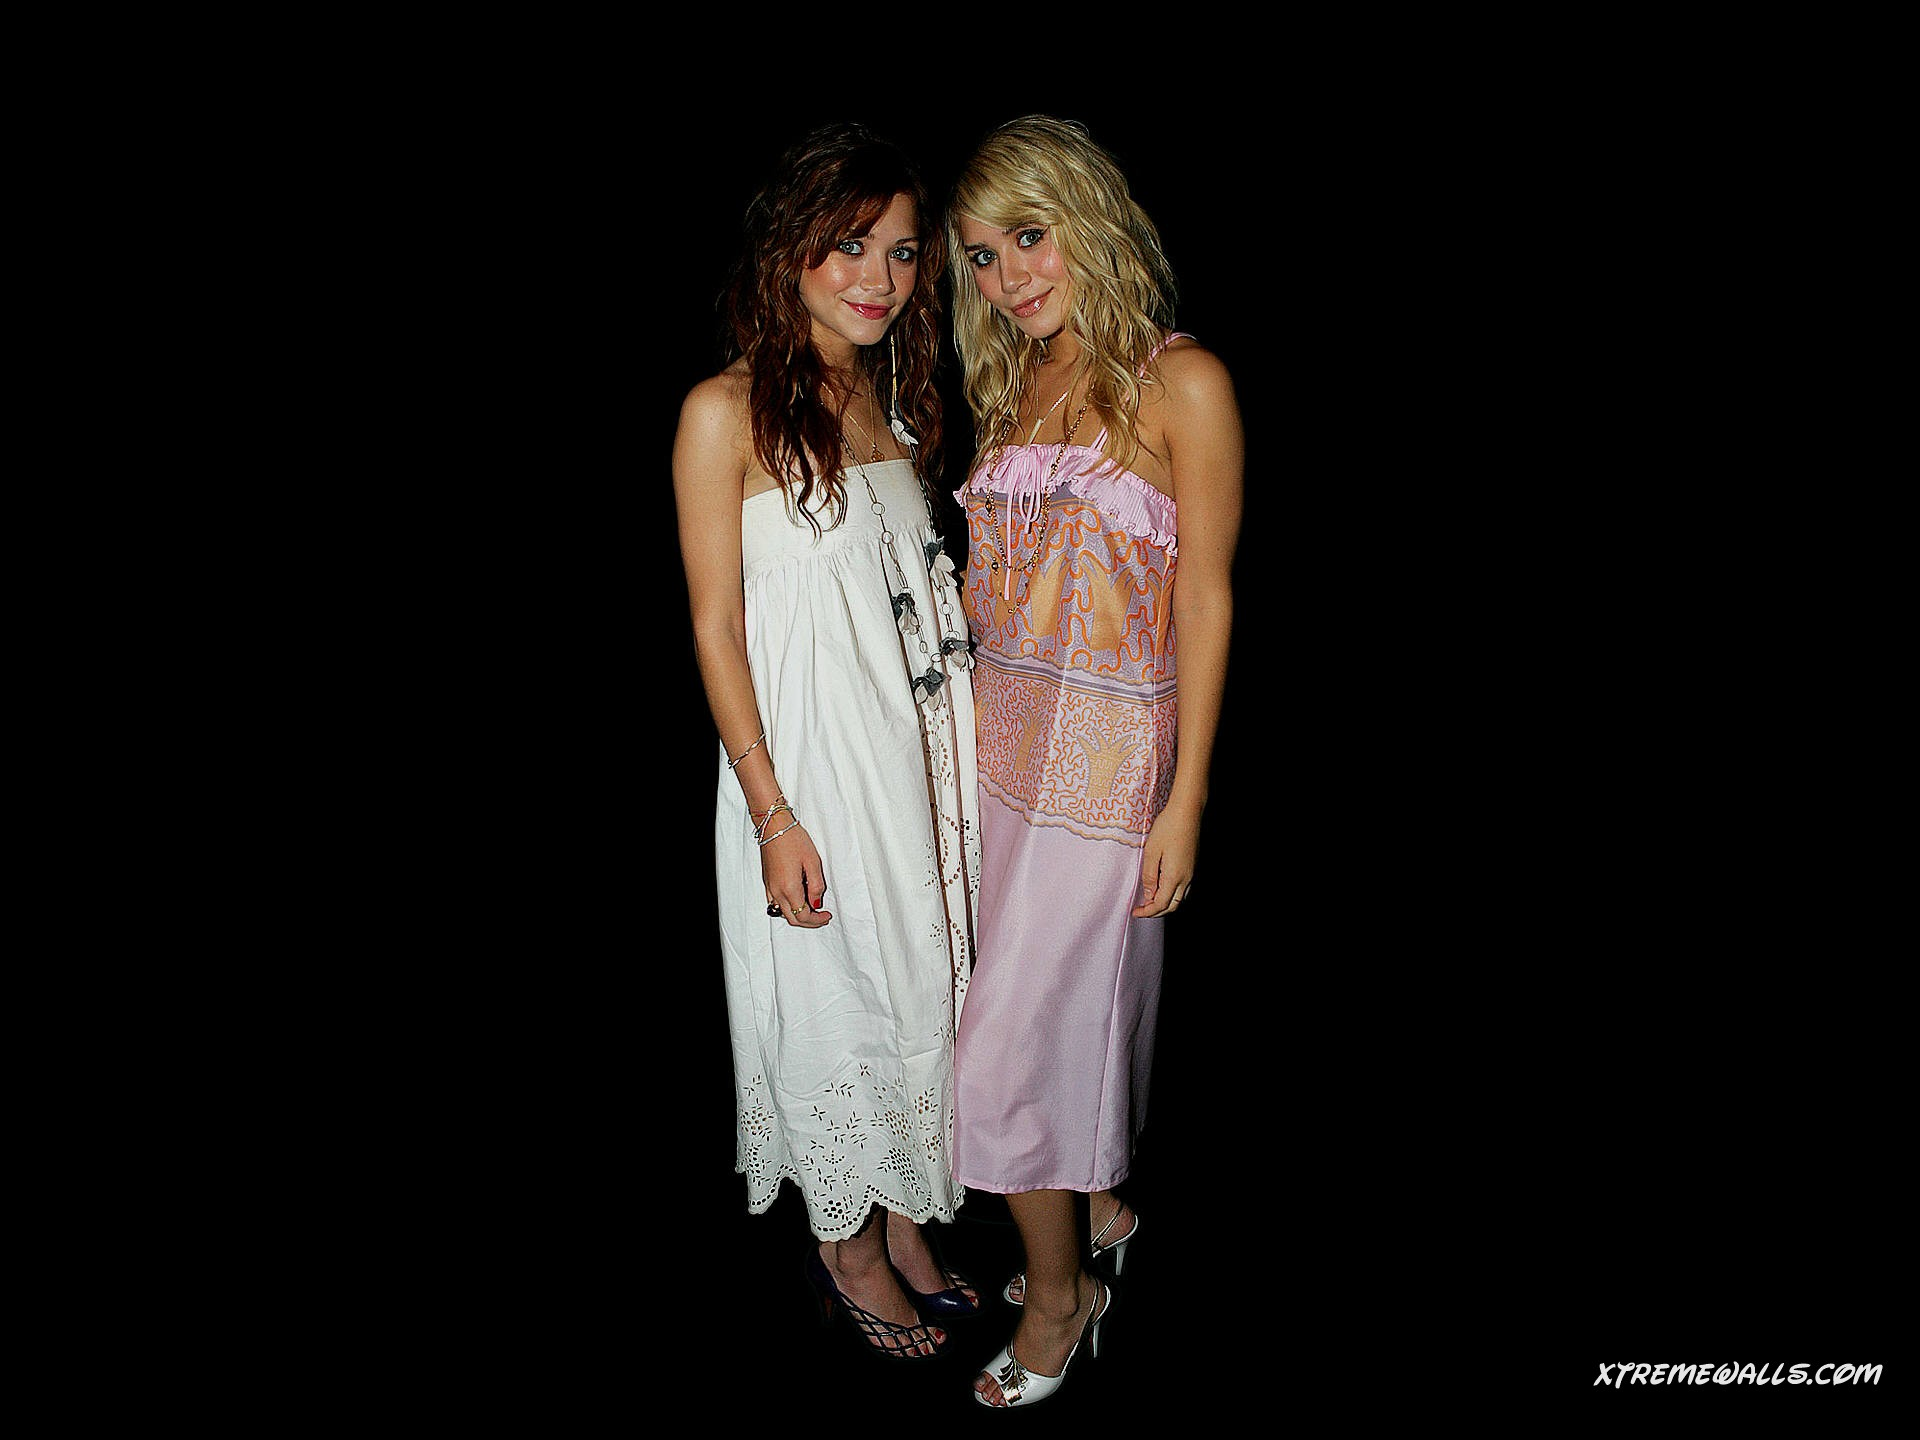 Olsen Twins 1920x1440 wallpaper   right click and choose Set as 1920x1440